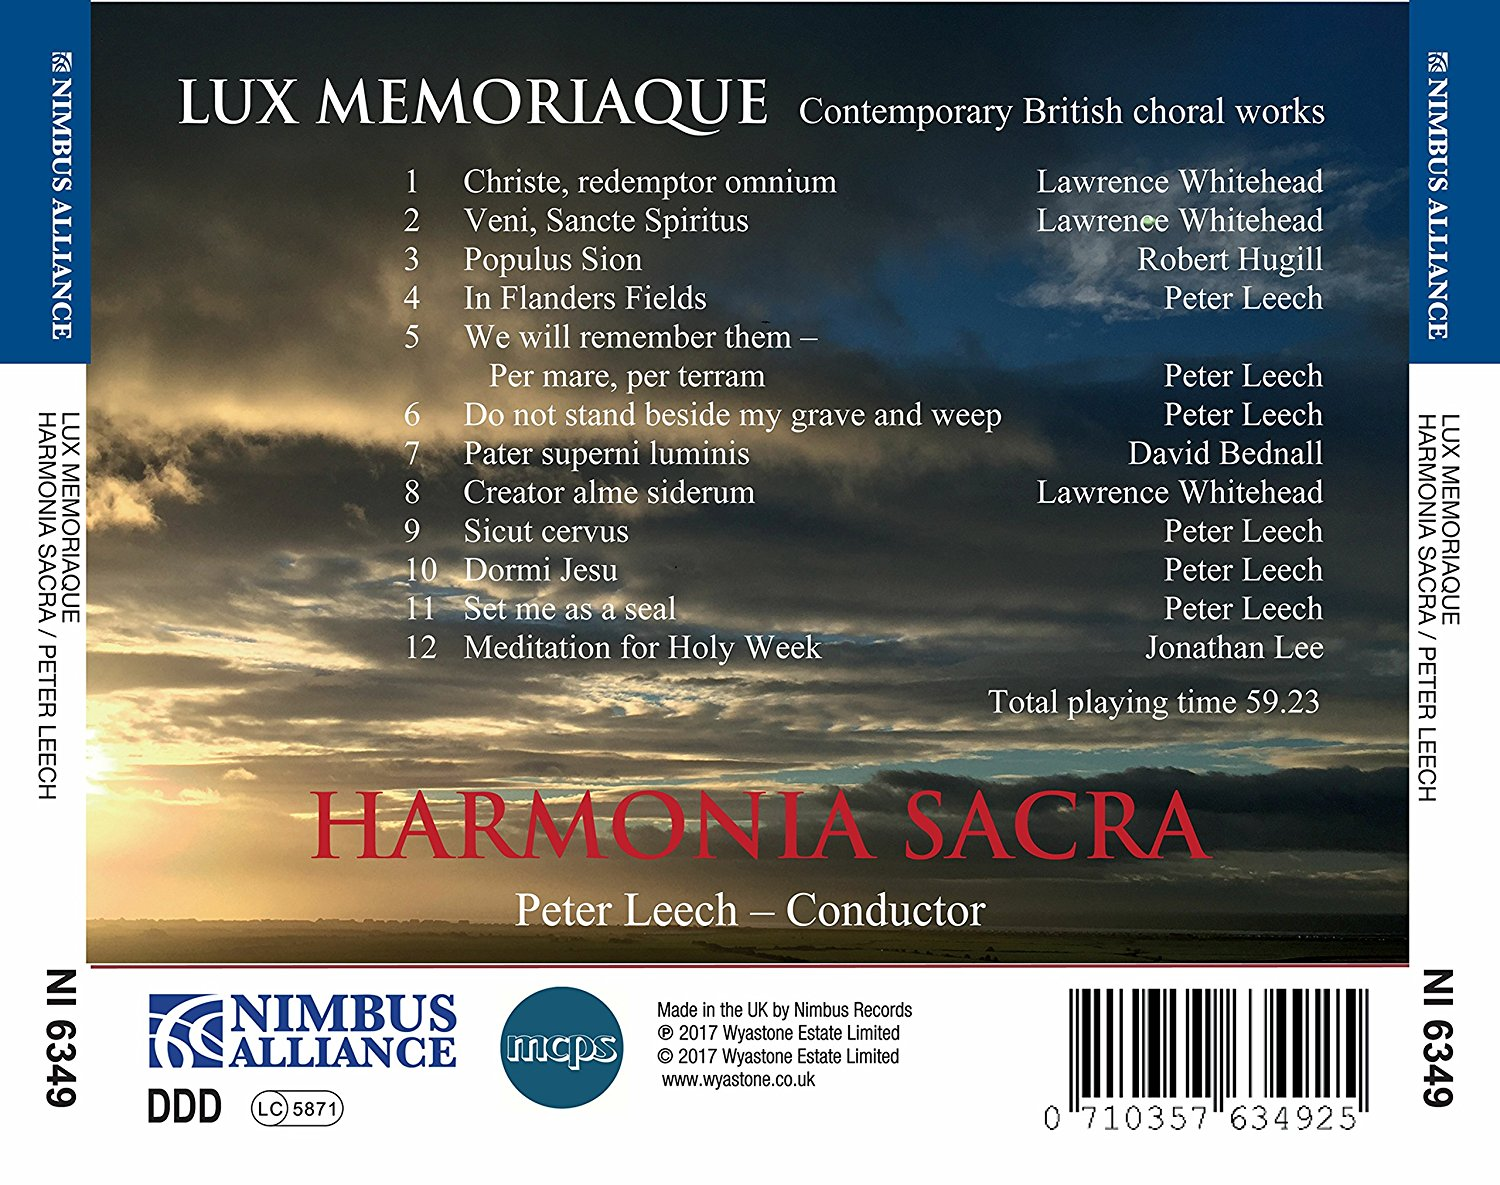 Planet Hugill: New recording of Populus Sion from Harmonia Sacra